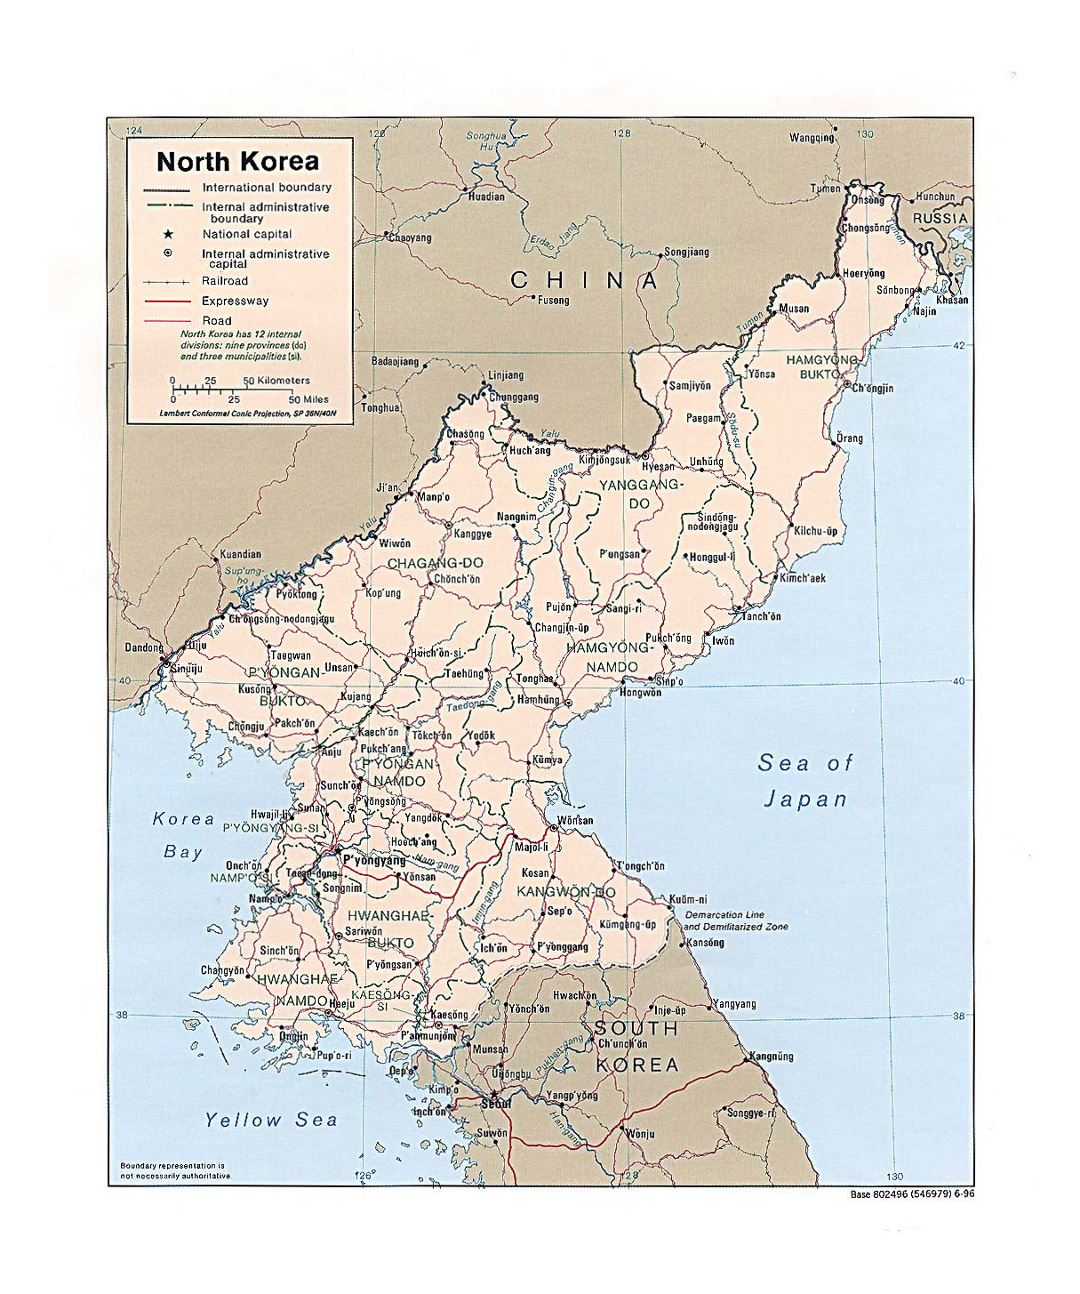 Detailed political and administrative map of North Korea with roads, railroads and major cities - 1996